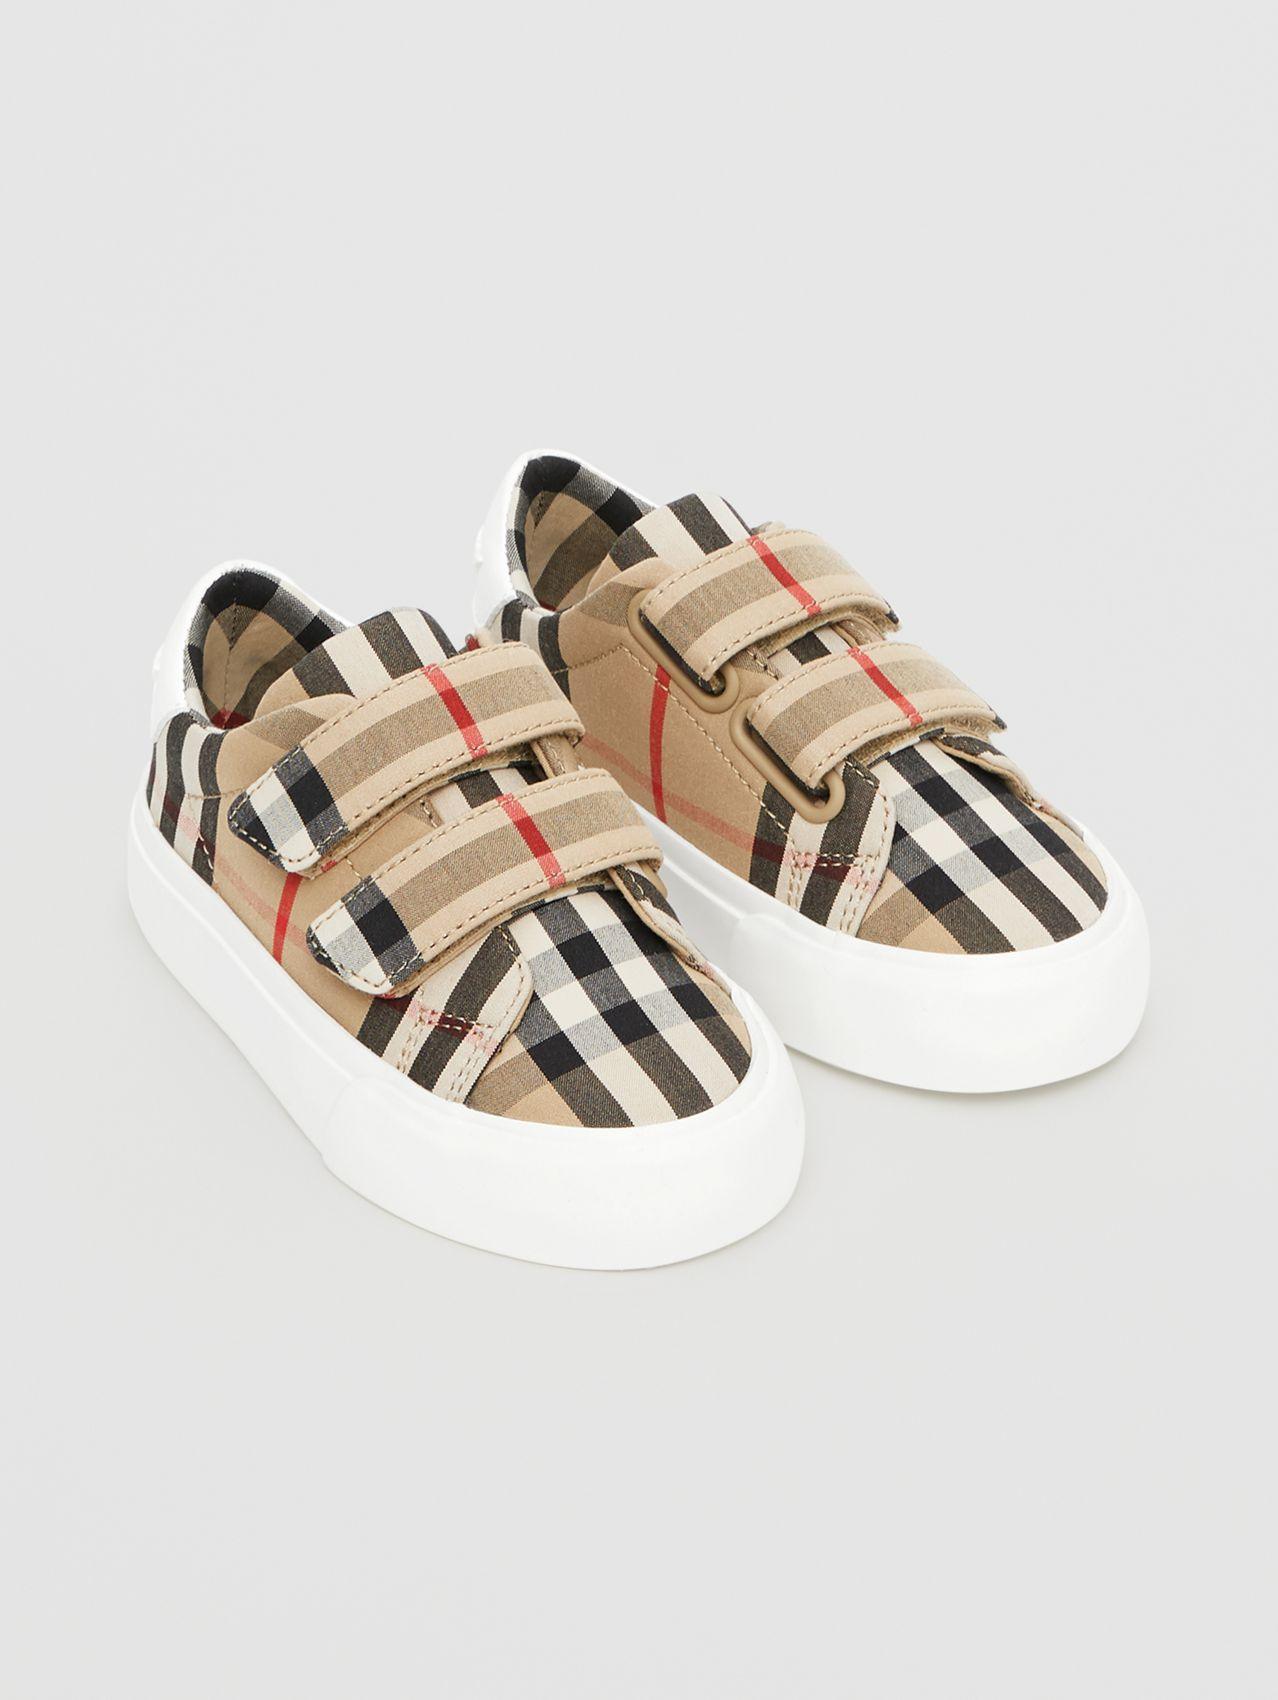 Vintage Check Cotton Sneakers (Archive Beige)